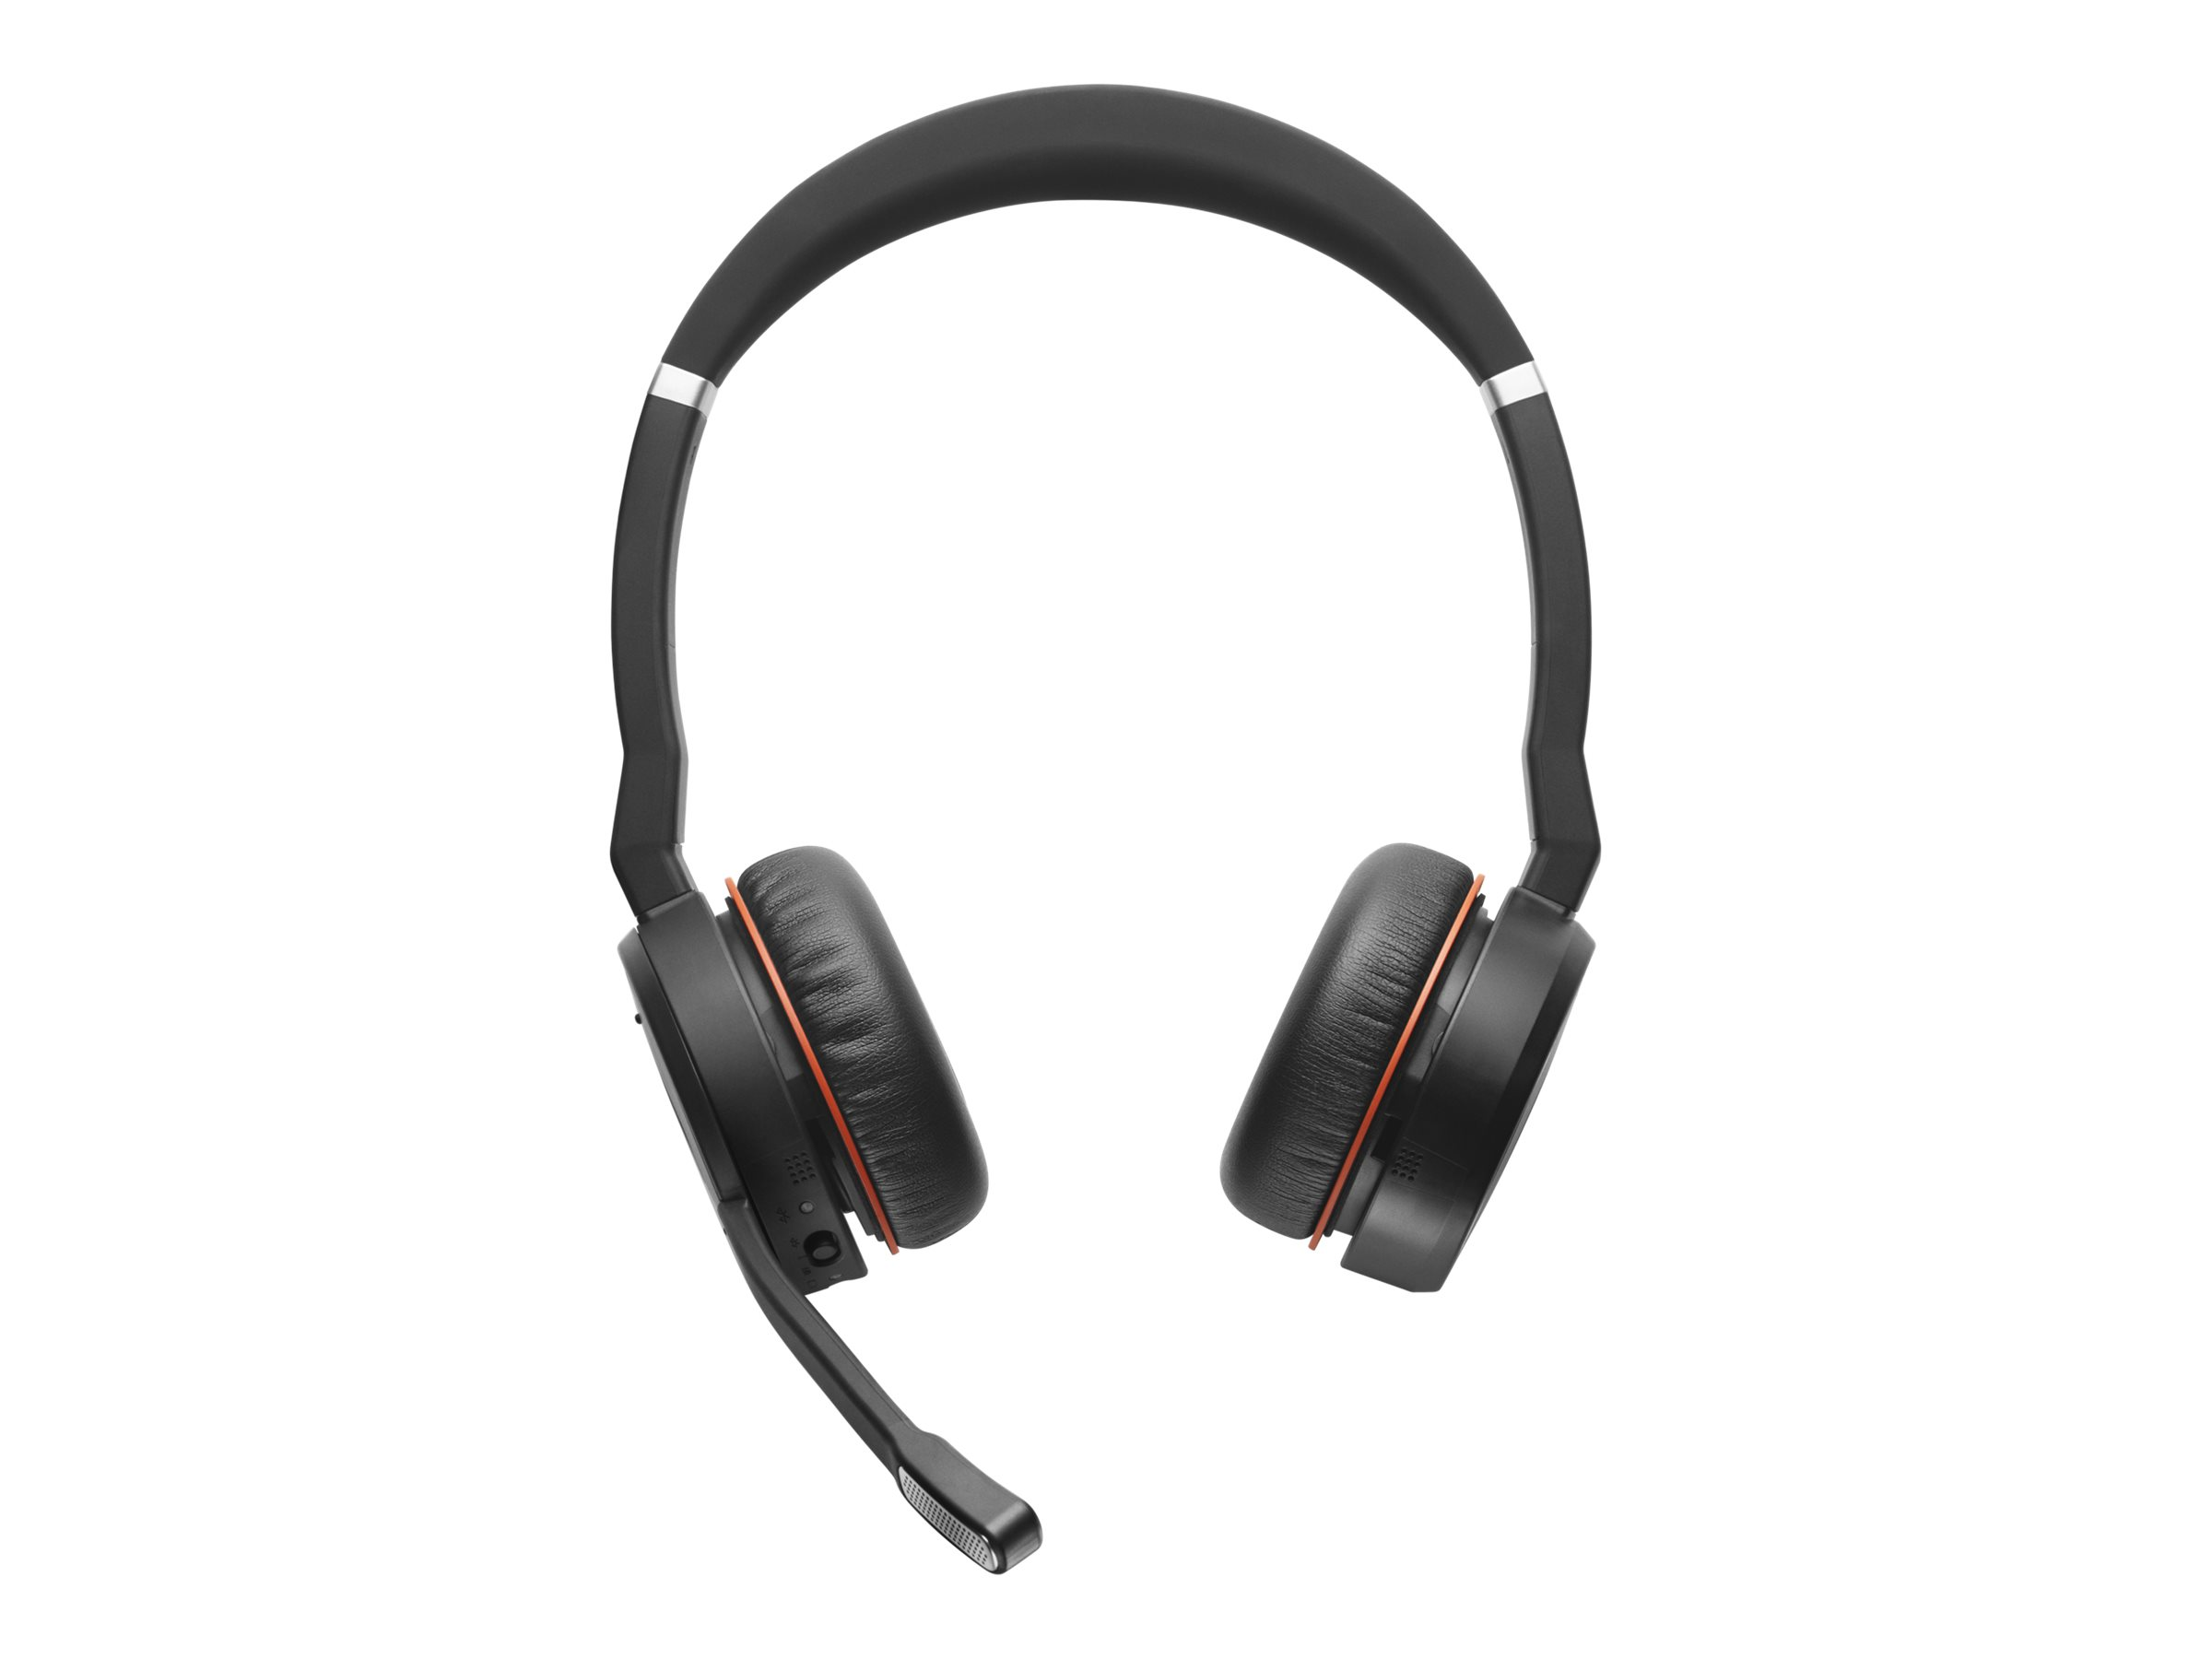 671b28d77 DCS - On ear - Jabra Evolve 75 MS Stereo Trådløs Sort Headset